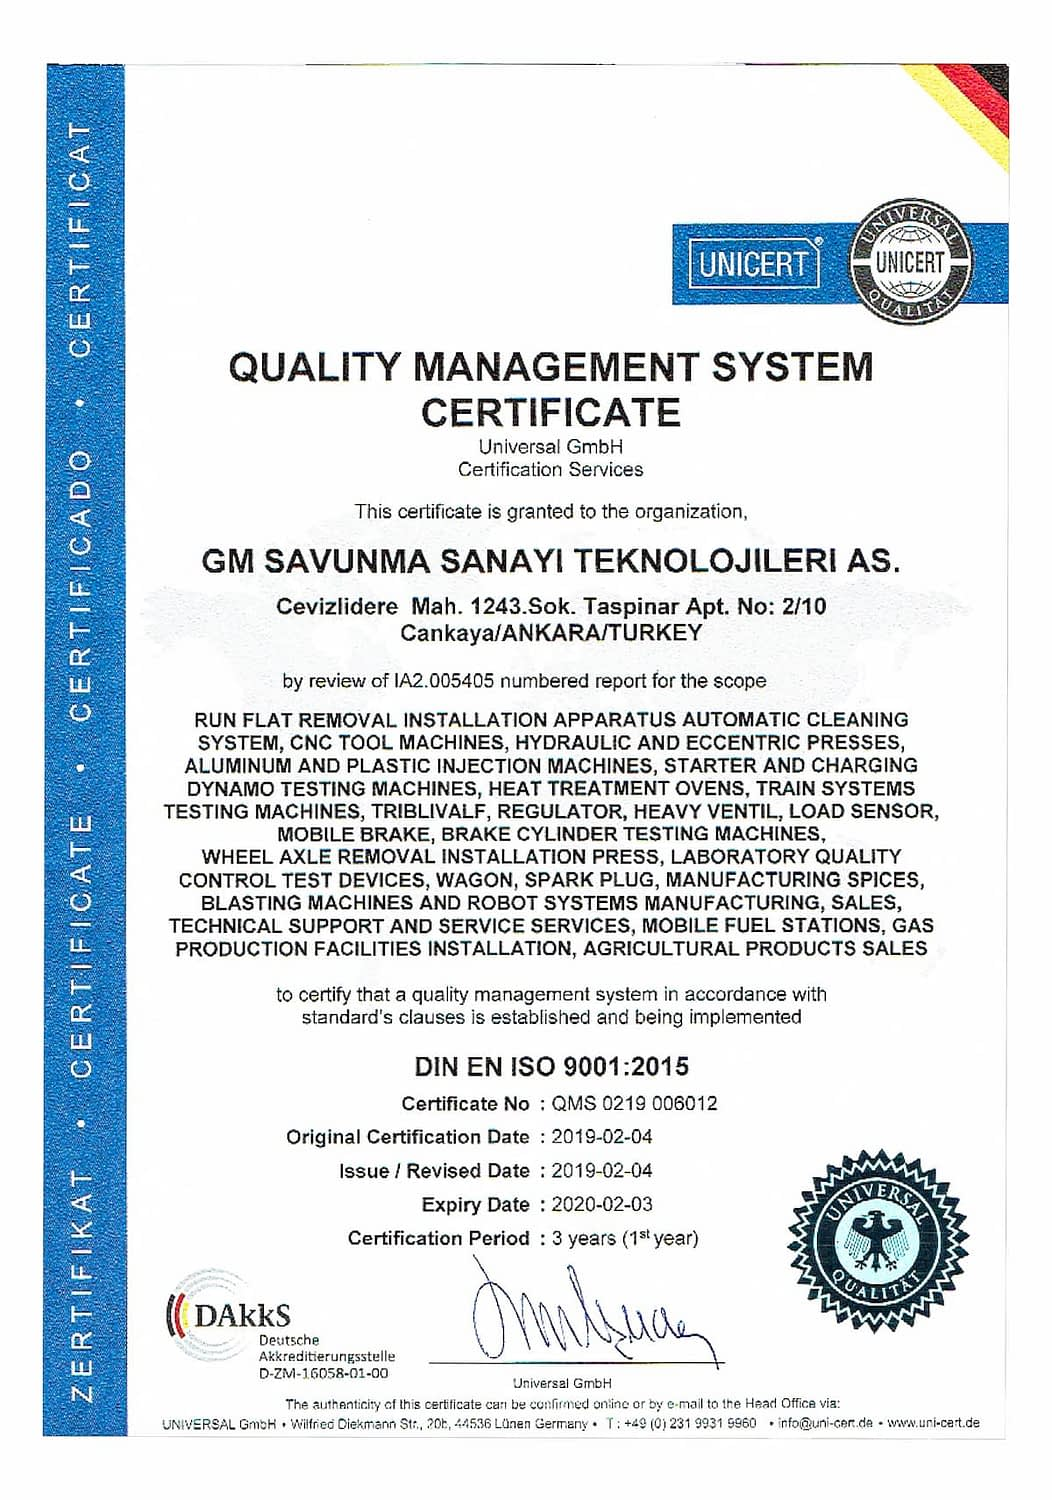 gm-defensive-iso-9001-certificate-2-cop